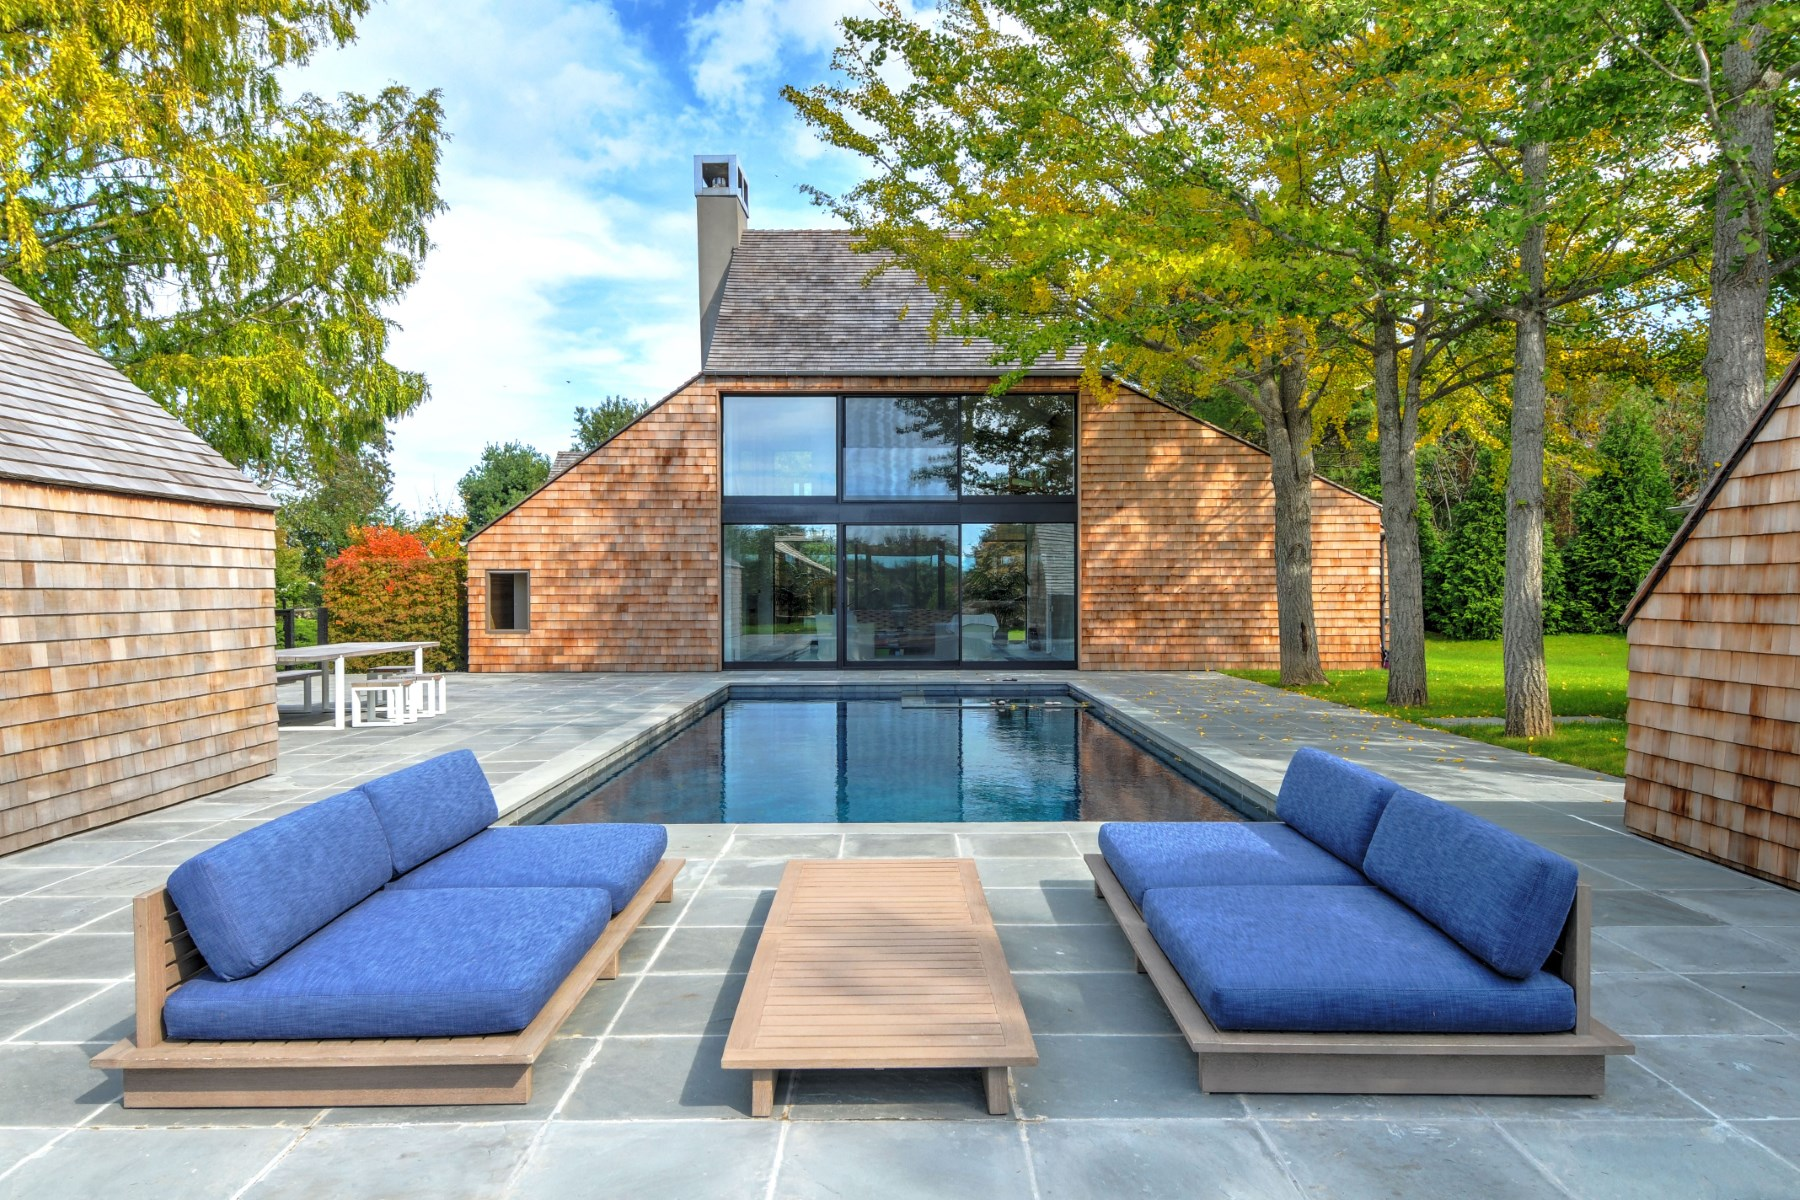 Single Family Home for Rent at Modern Compound Bridgehampton, New York, 11932 United States